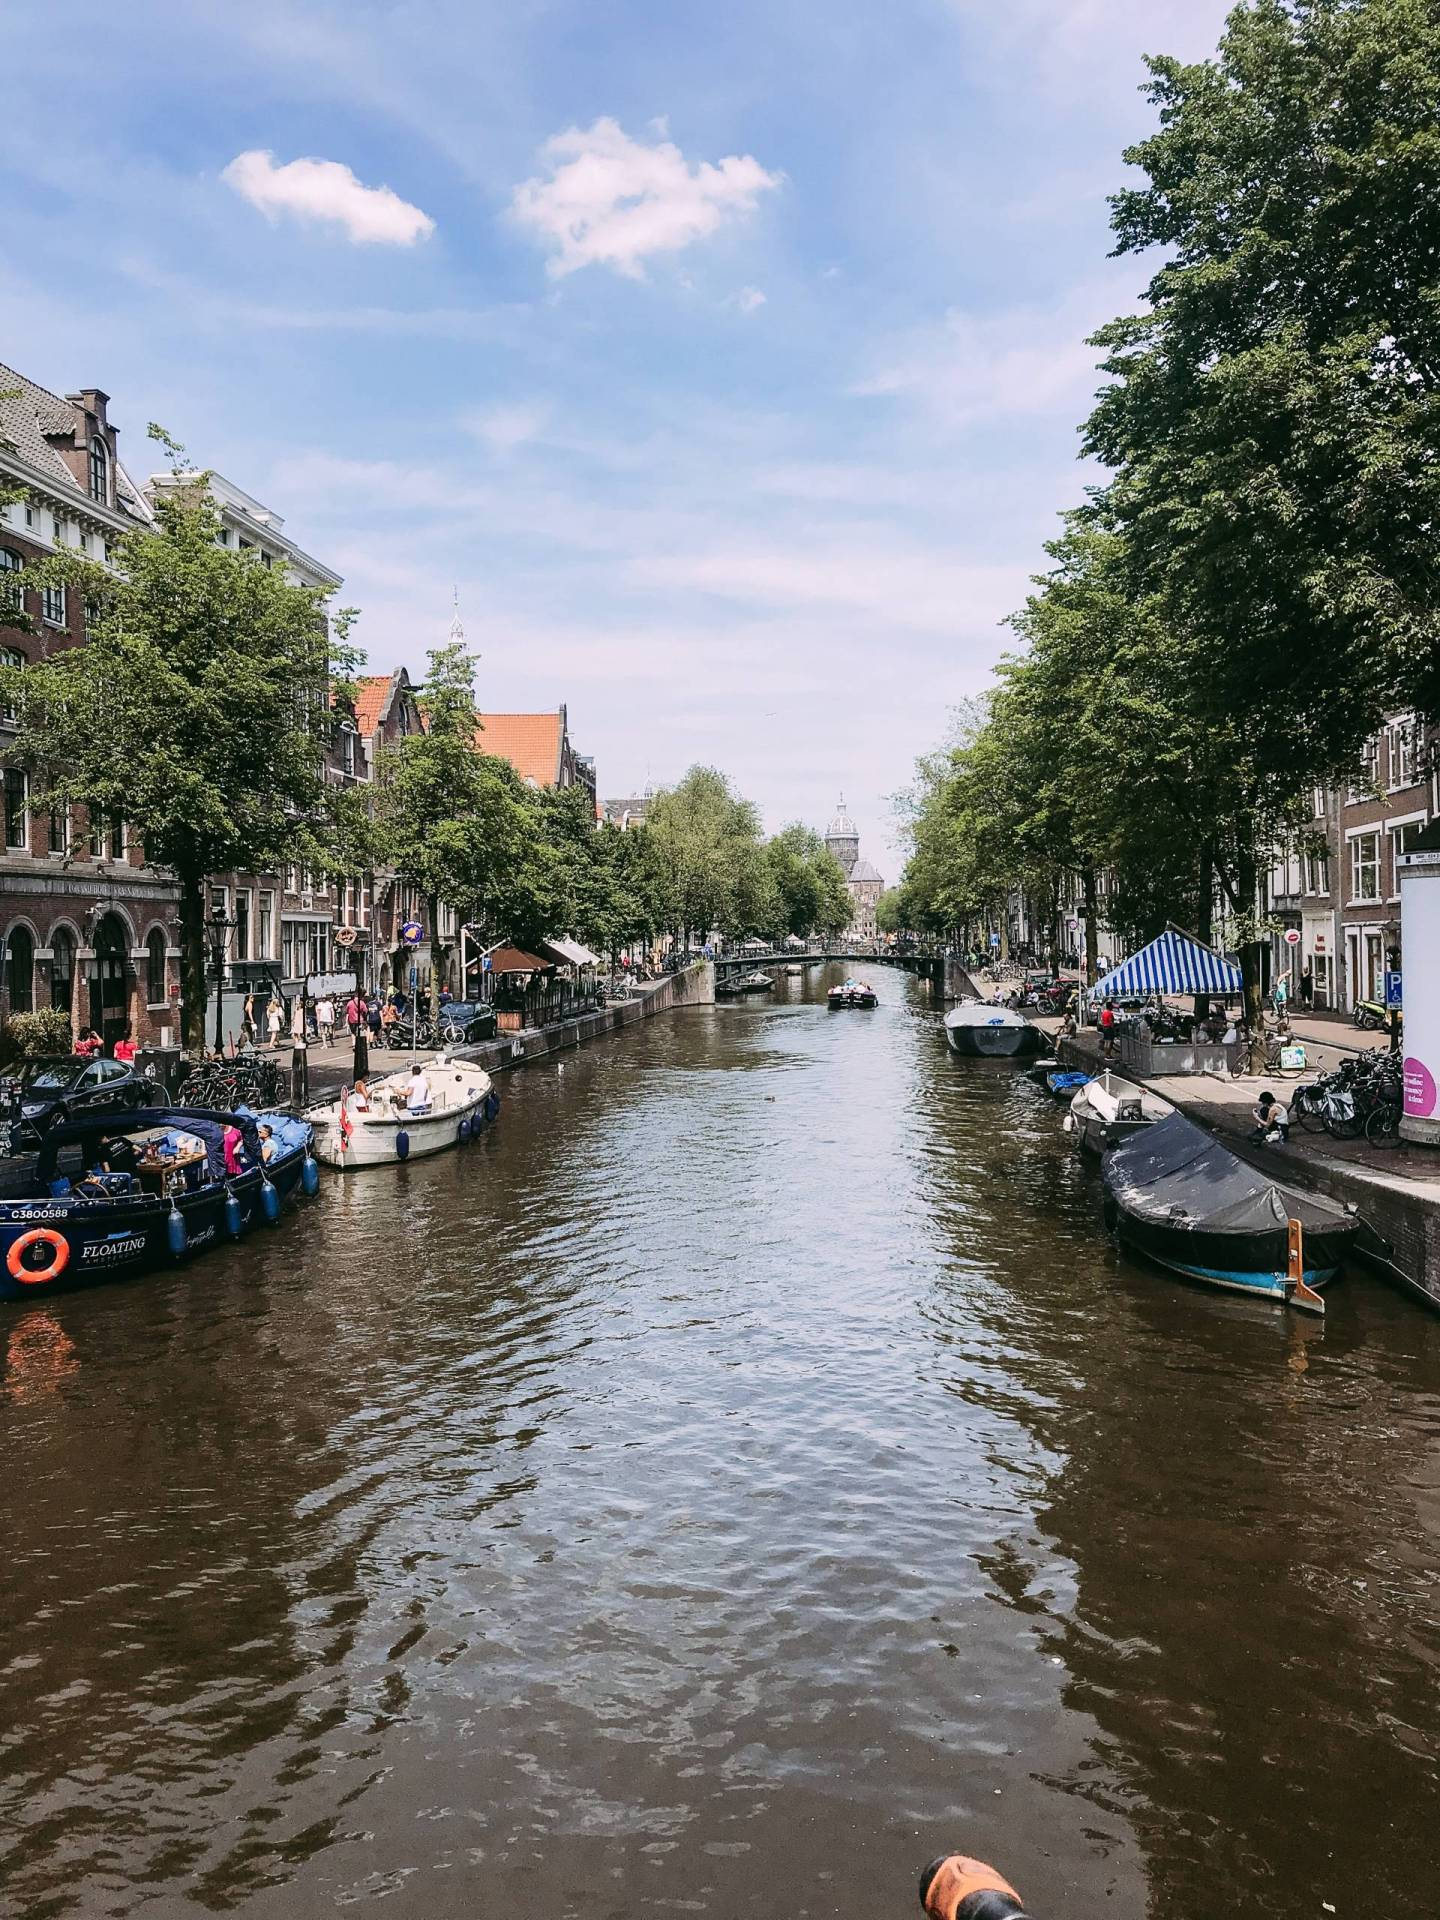 Oh Amsterdam, your stunning canal houses and twisting canals stole my heart! Click through for everything we did, where we ate, and the hotel we loved so much during our visit!